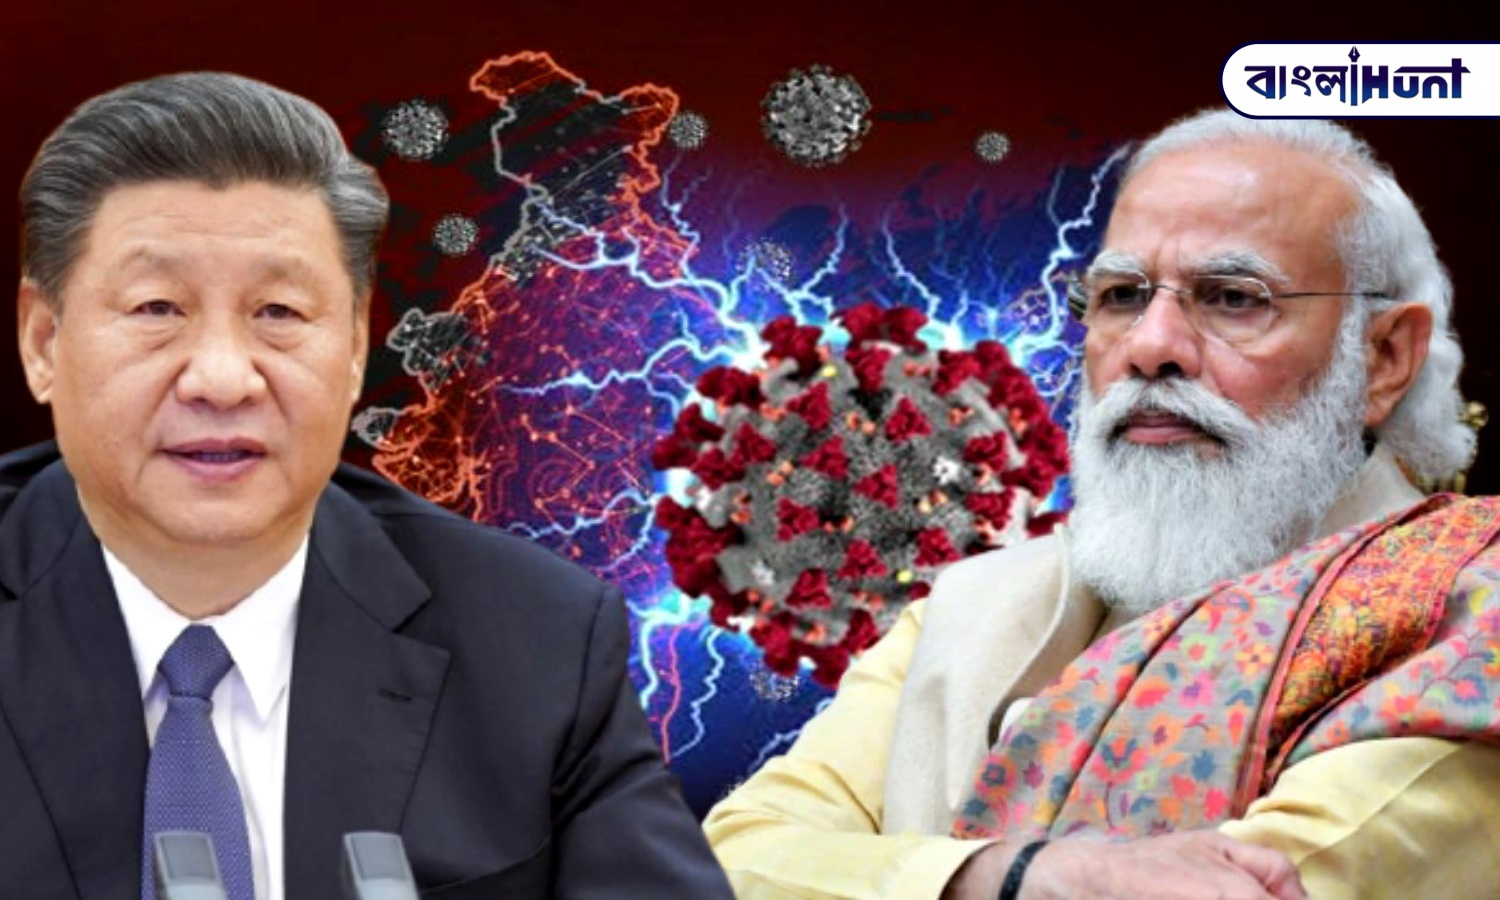 Corona virus has spread all over the world from India, strange claim of Chinese scientists